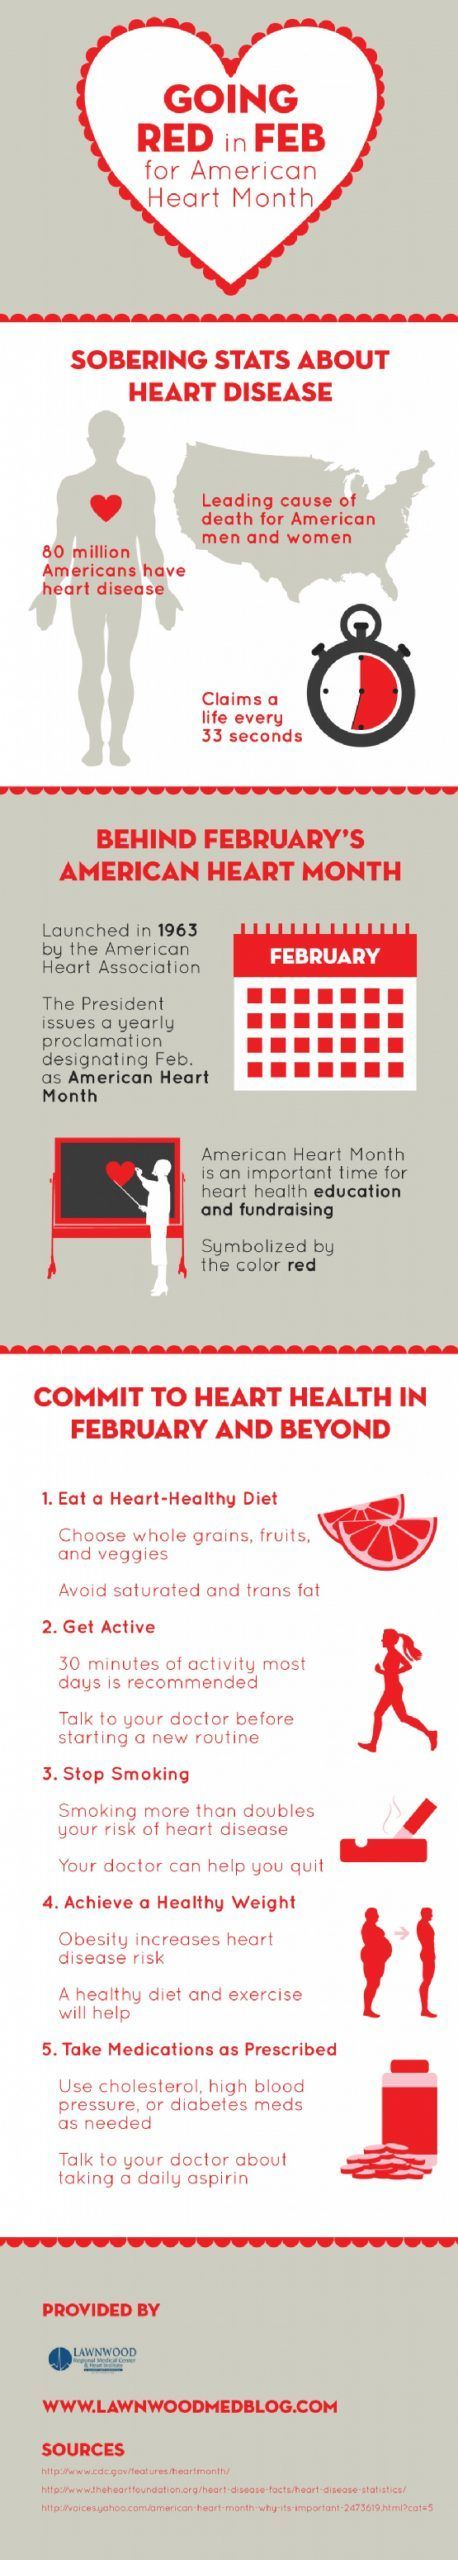 Going Red in Feb for American Heart Month  feb